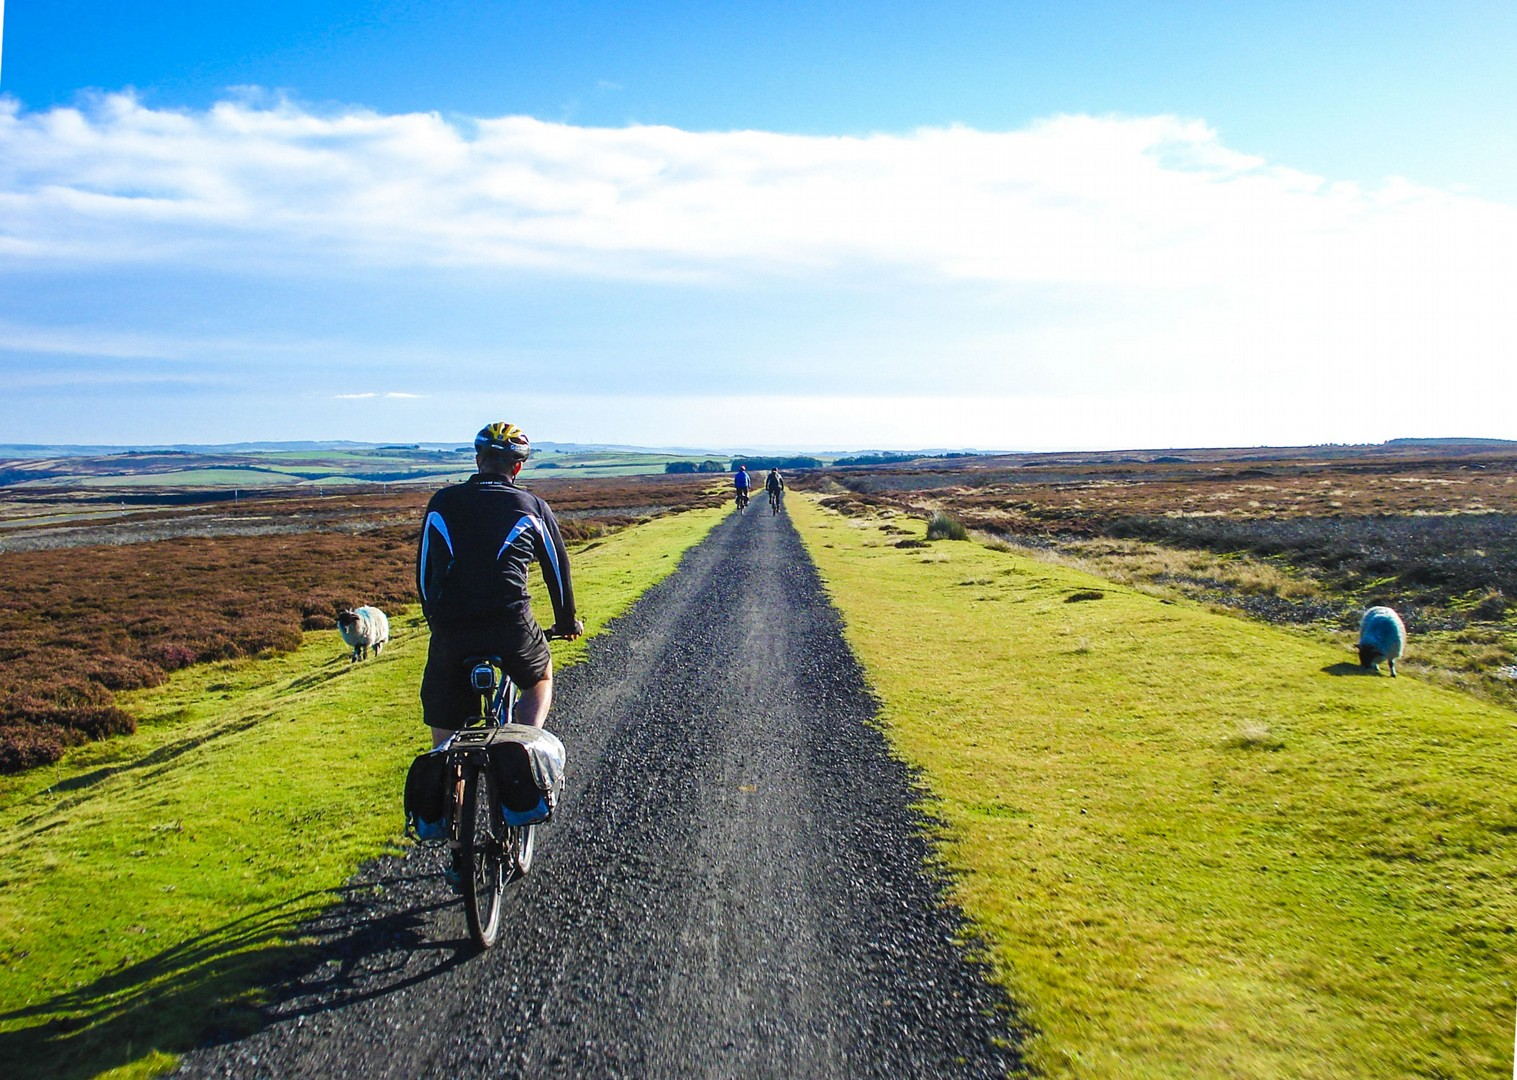 cycle-paths-authentic-uk-britain-5-days-self-guided-tour.jpg - UK - C2C - Coast to Coast 5 Days Cycling - Self-Guided Leisure Cycling Holiday - Leisure Cycling